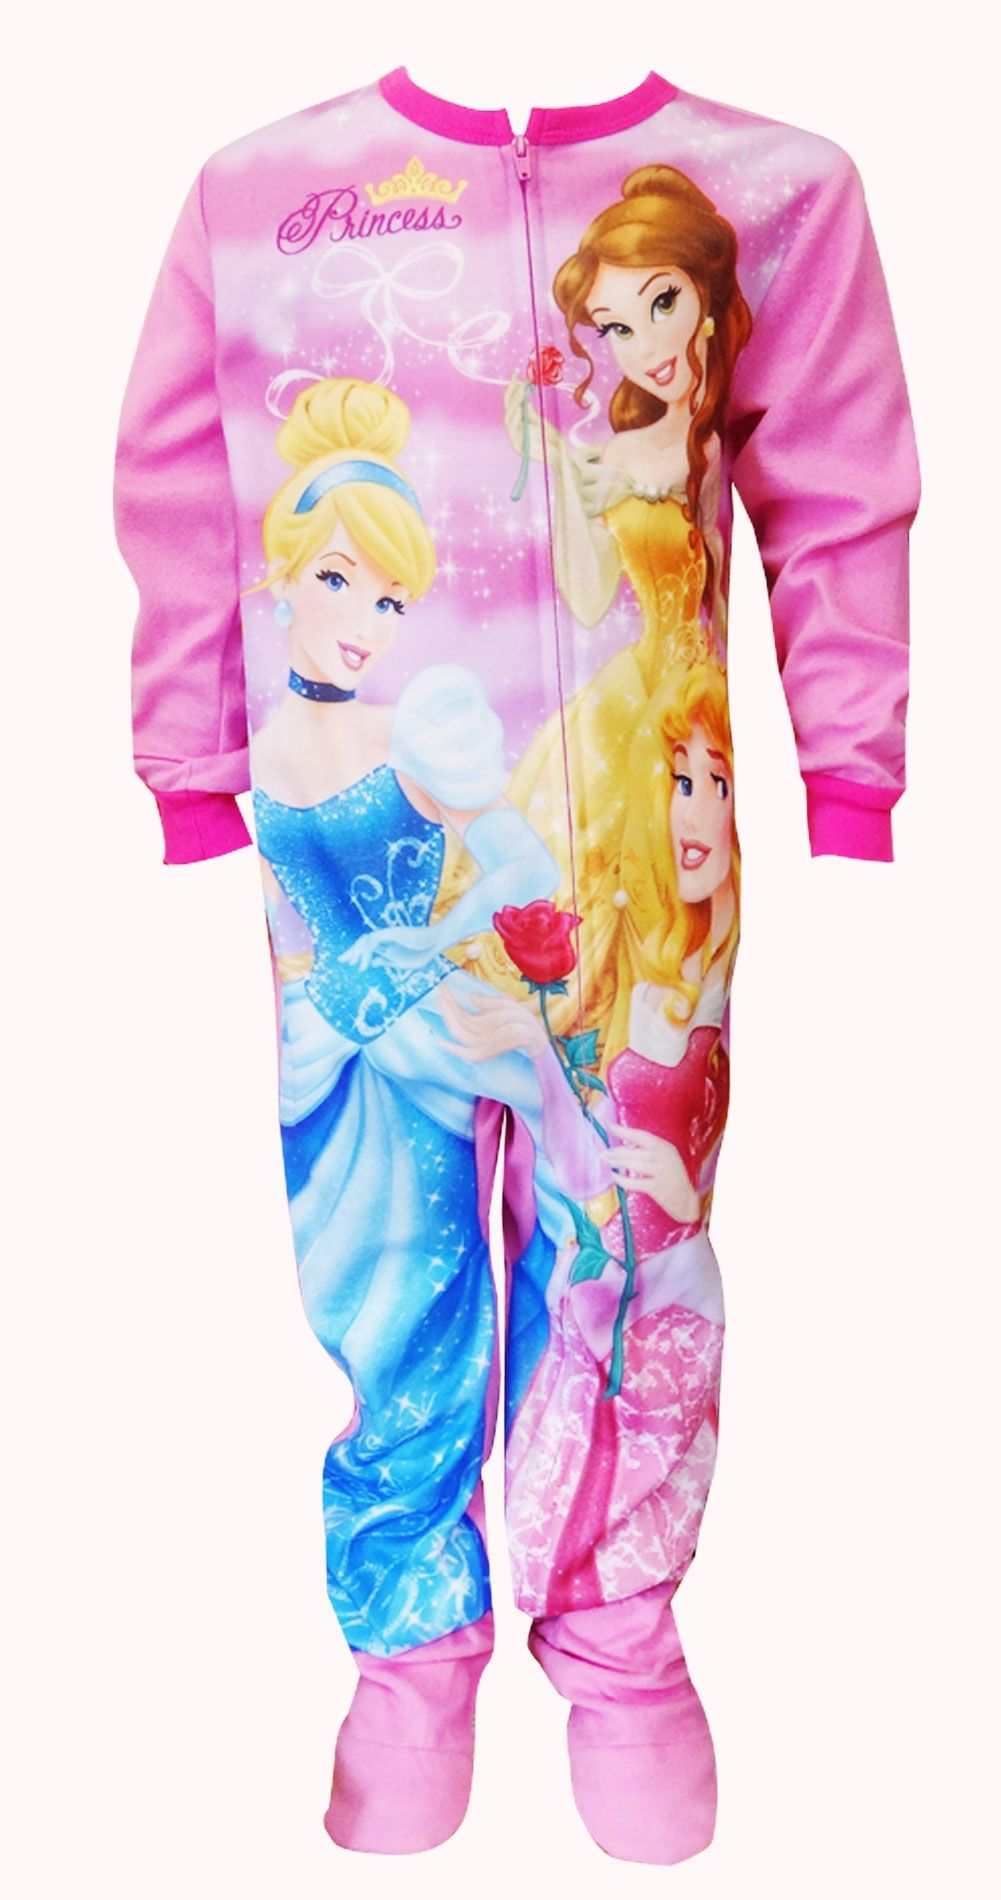 Disney Princess Pink Onesie Footie Pajama Sleeper Perfect for your little  princess as she heads off to dreamland! These flame r. e614a885e